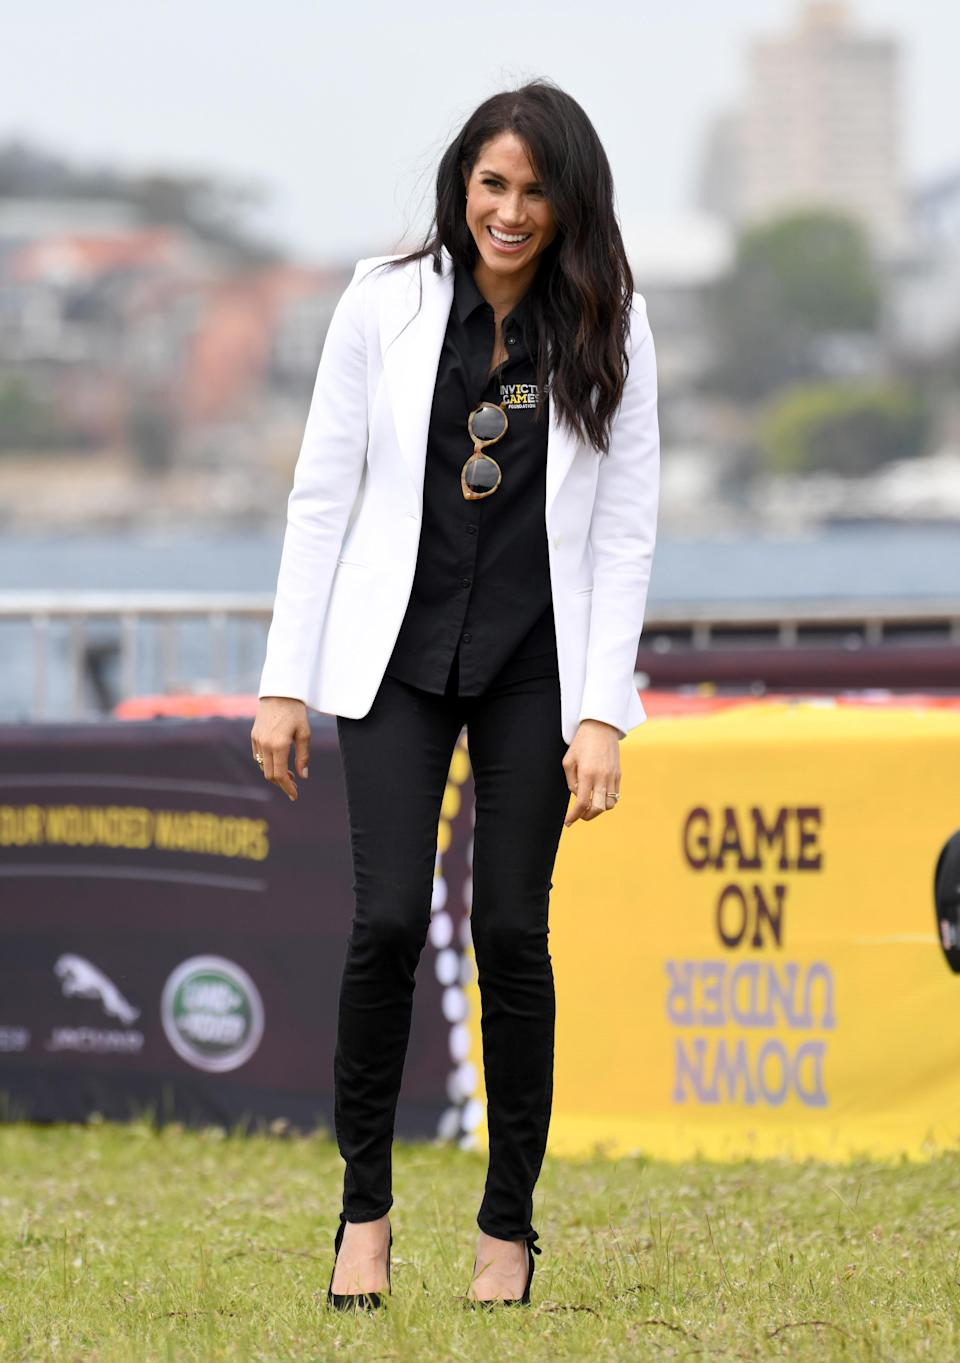 <p>For an Invictus Games event on day six of the couple's Australian royal tour, Meghan teamed a white Altuzarra blazer with an Invictus Sydney shirt. She finished the look with £159 Mother Demin jeans, $240 (approx £184) Illesteva sunglasses and her go-to £566 Tabitha Simmons pumps. <em>[Photo: Getty]</em> </p>